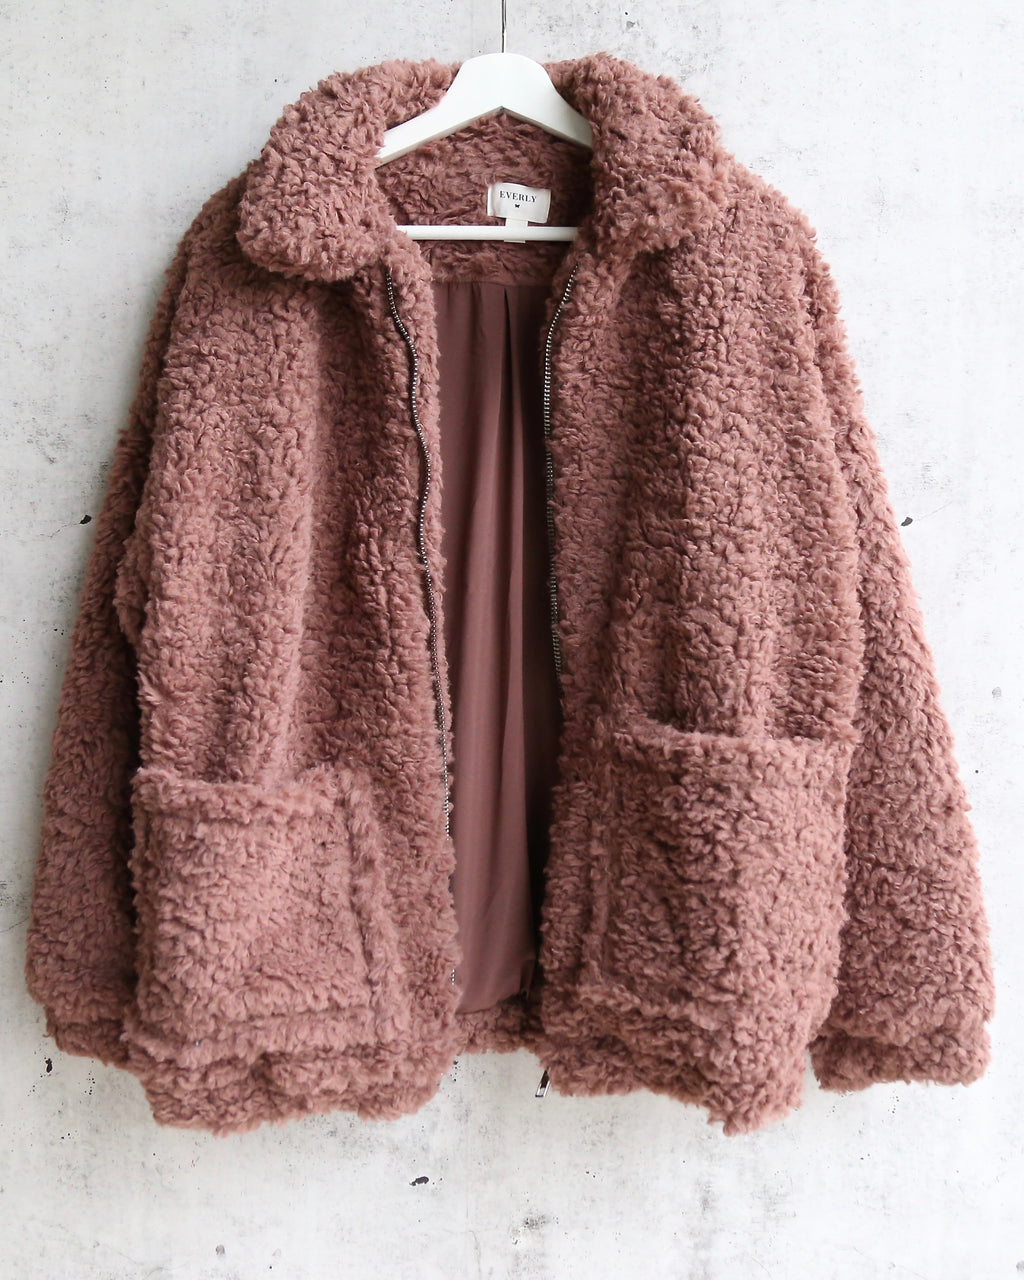 Everly - Glamorous Faux Sherpa Teddy Coat in Mocha